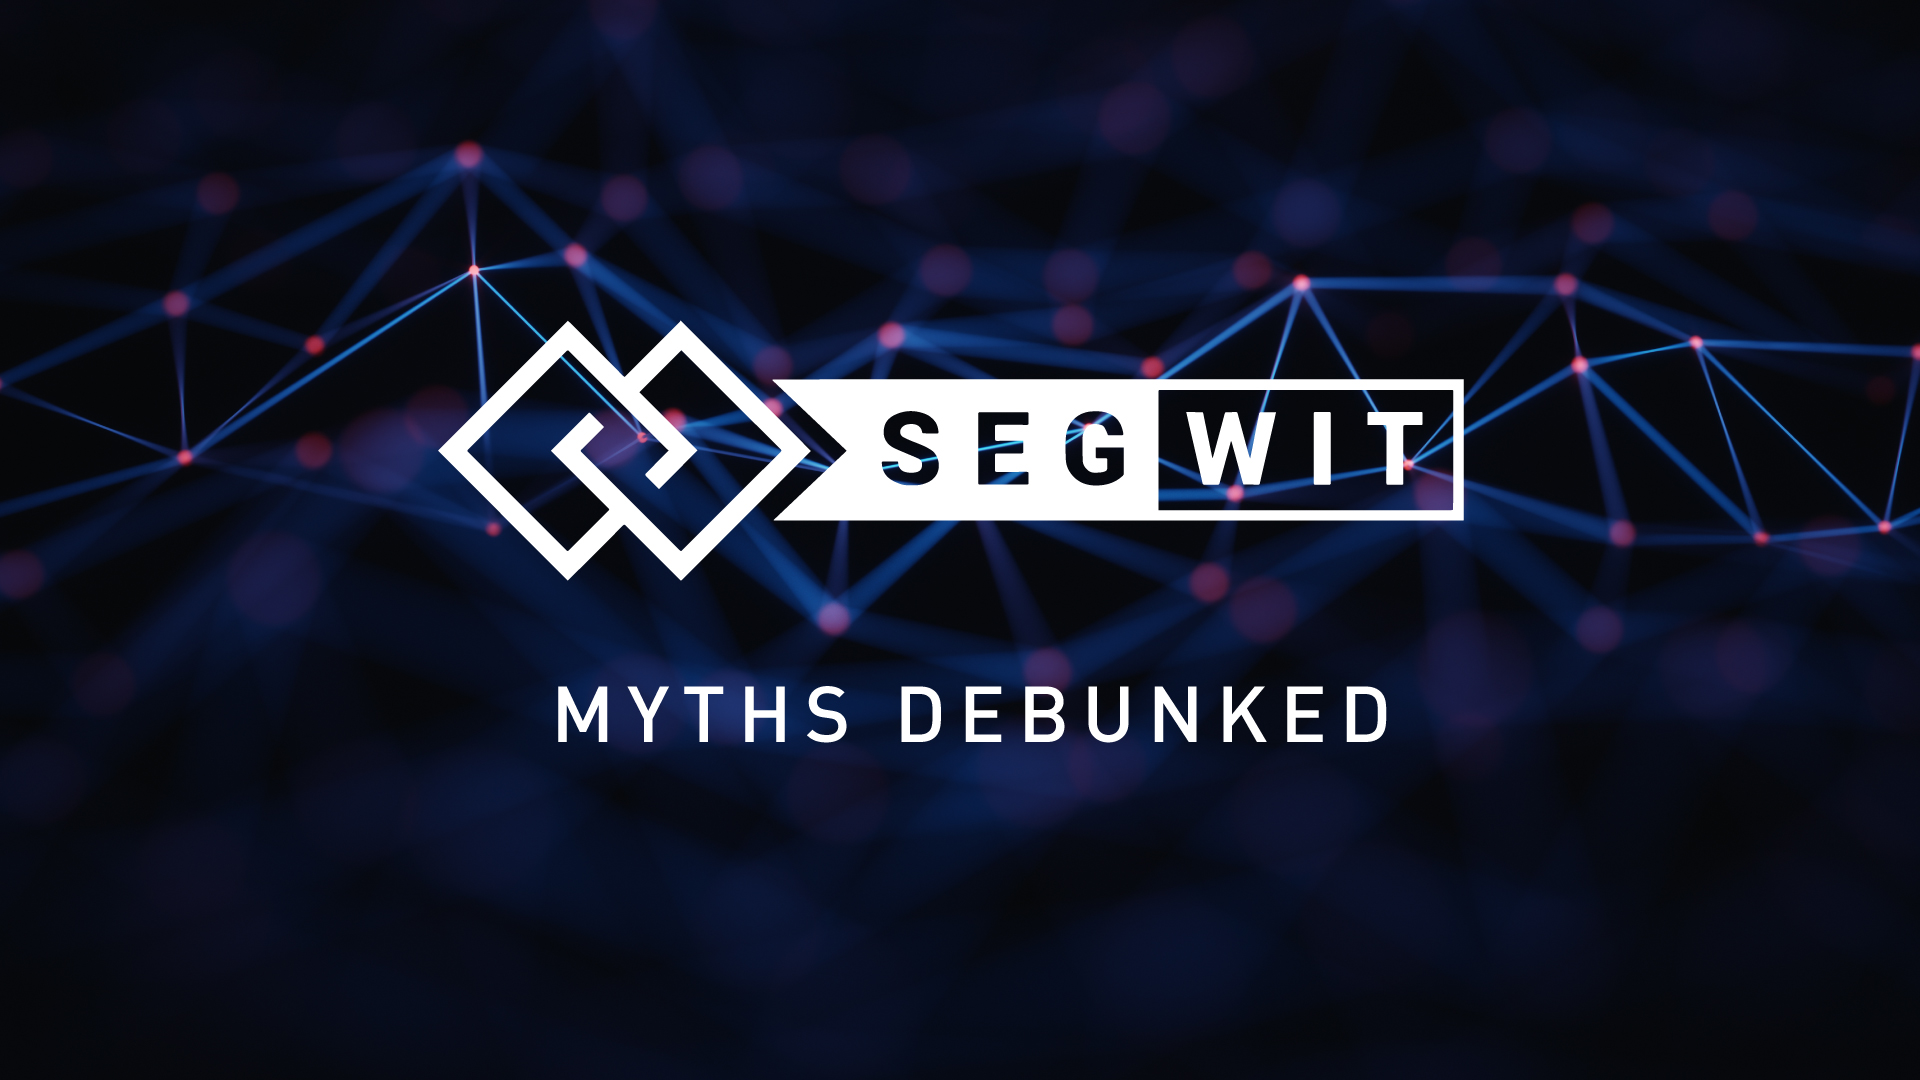 SegWit Myths Debunked